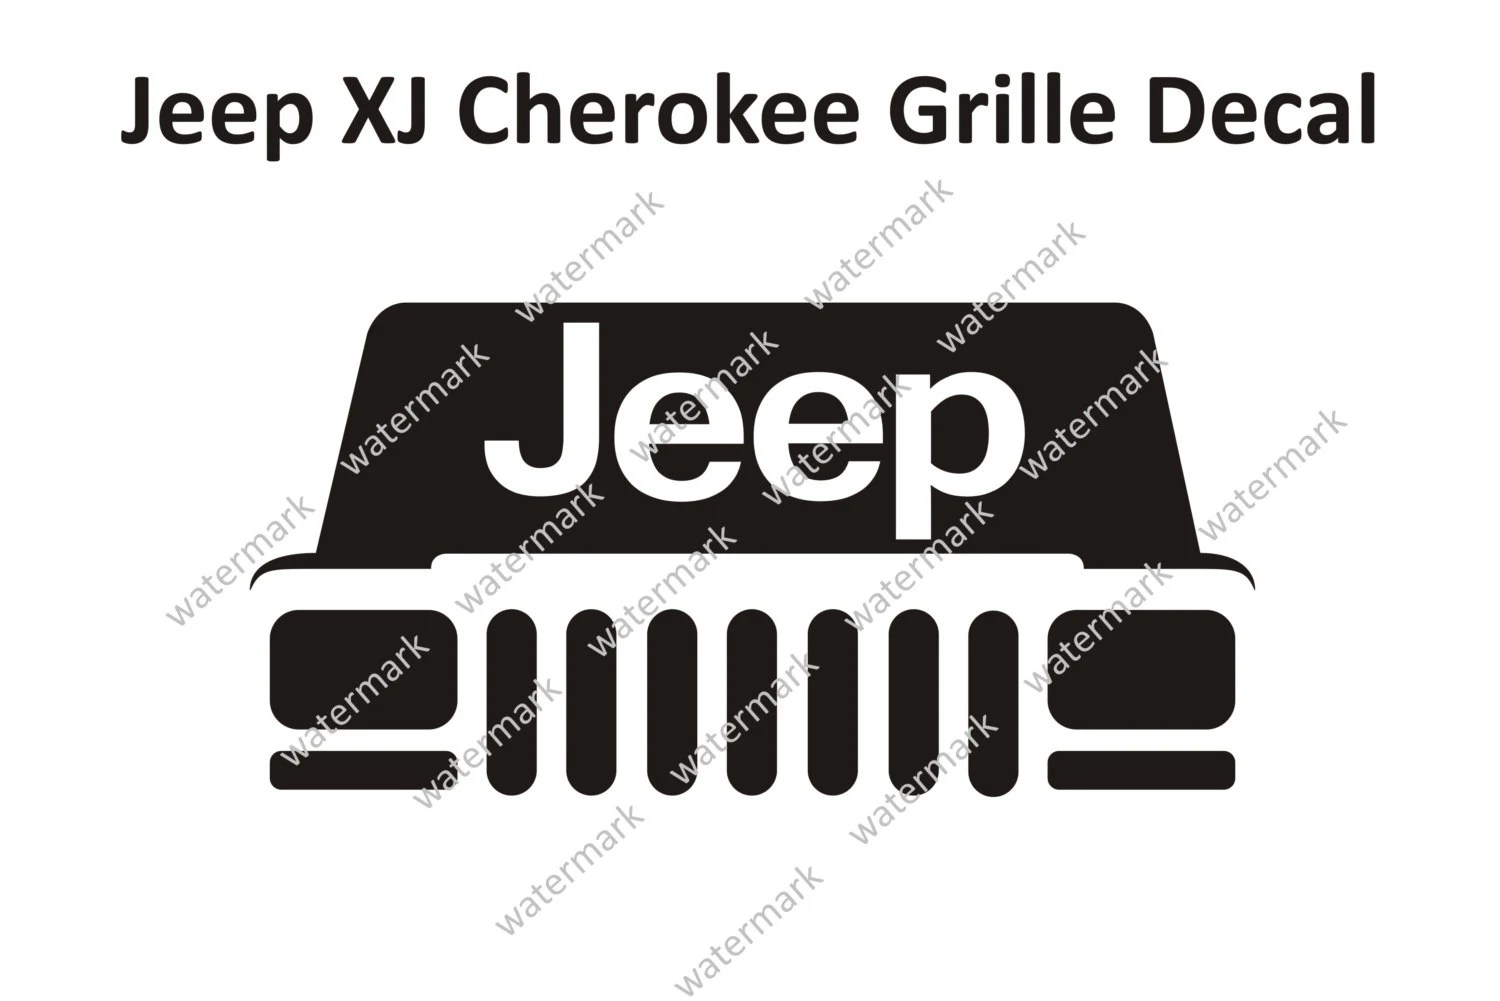 Jeep XJ Cherokee Classic Sport Grille Logo Decal by Robnmon